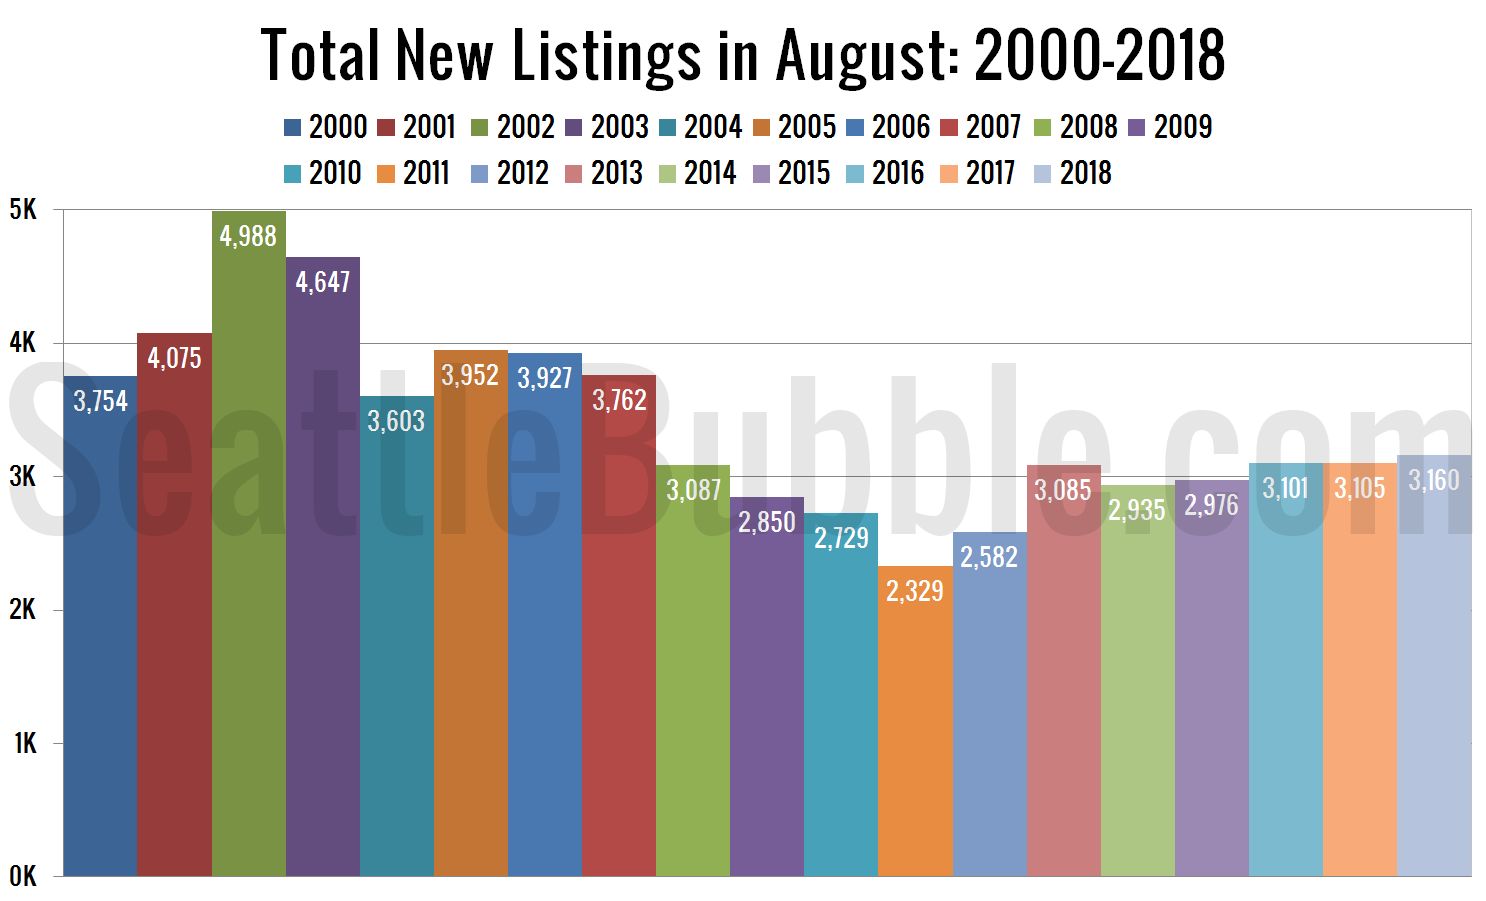 Total New Listings in August: 2000-2018